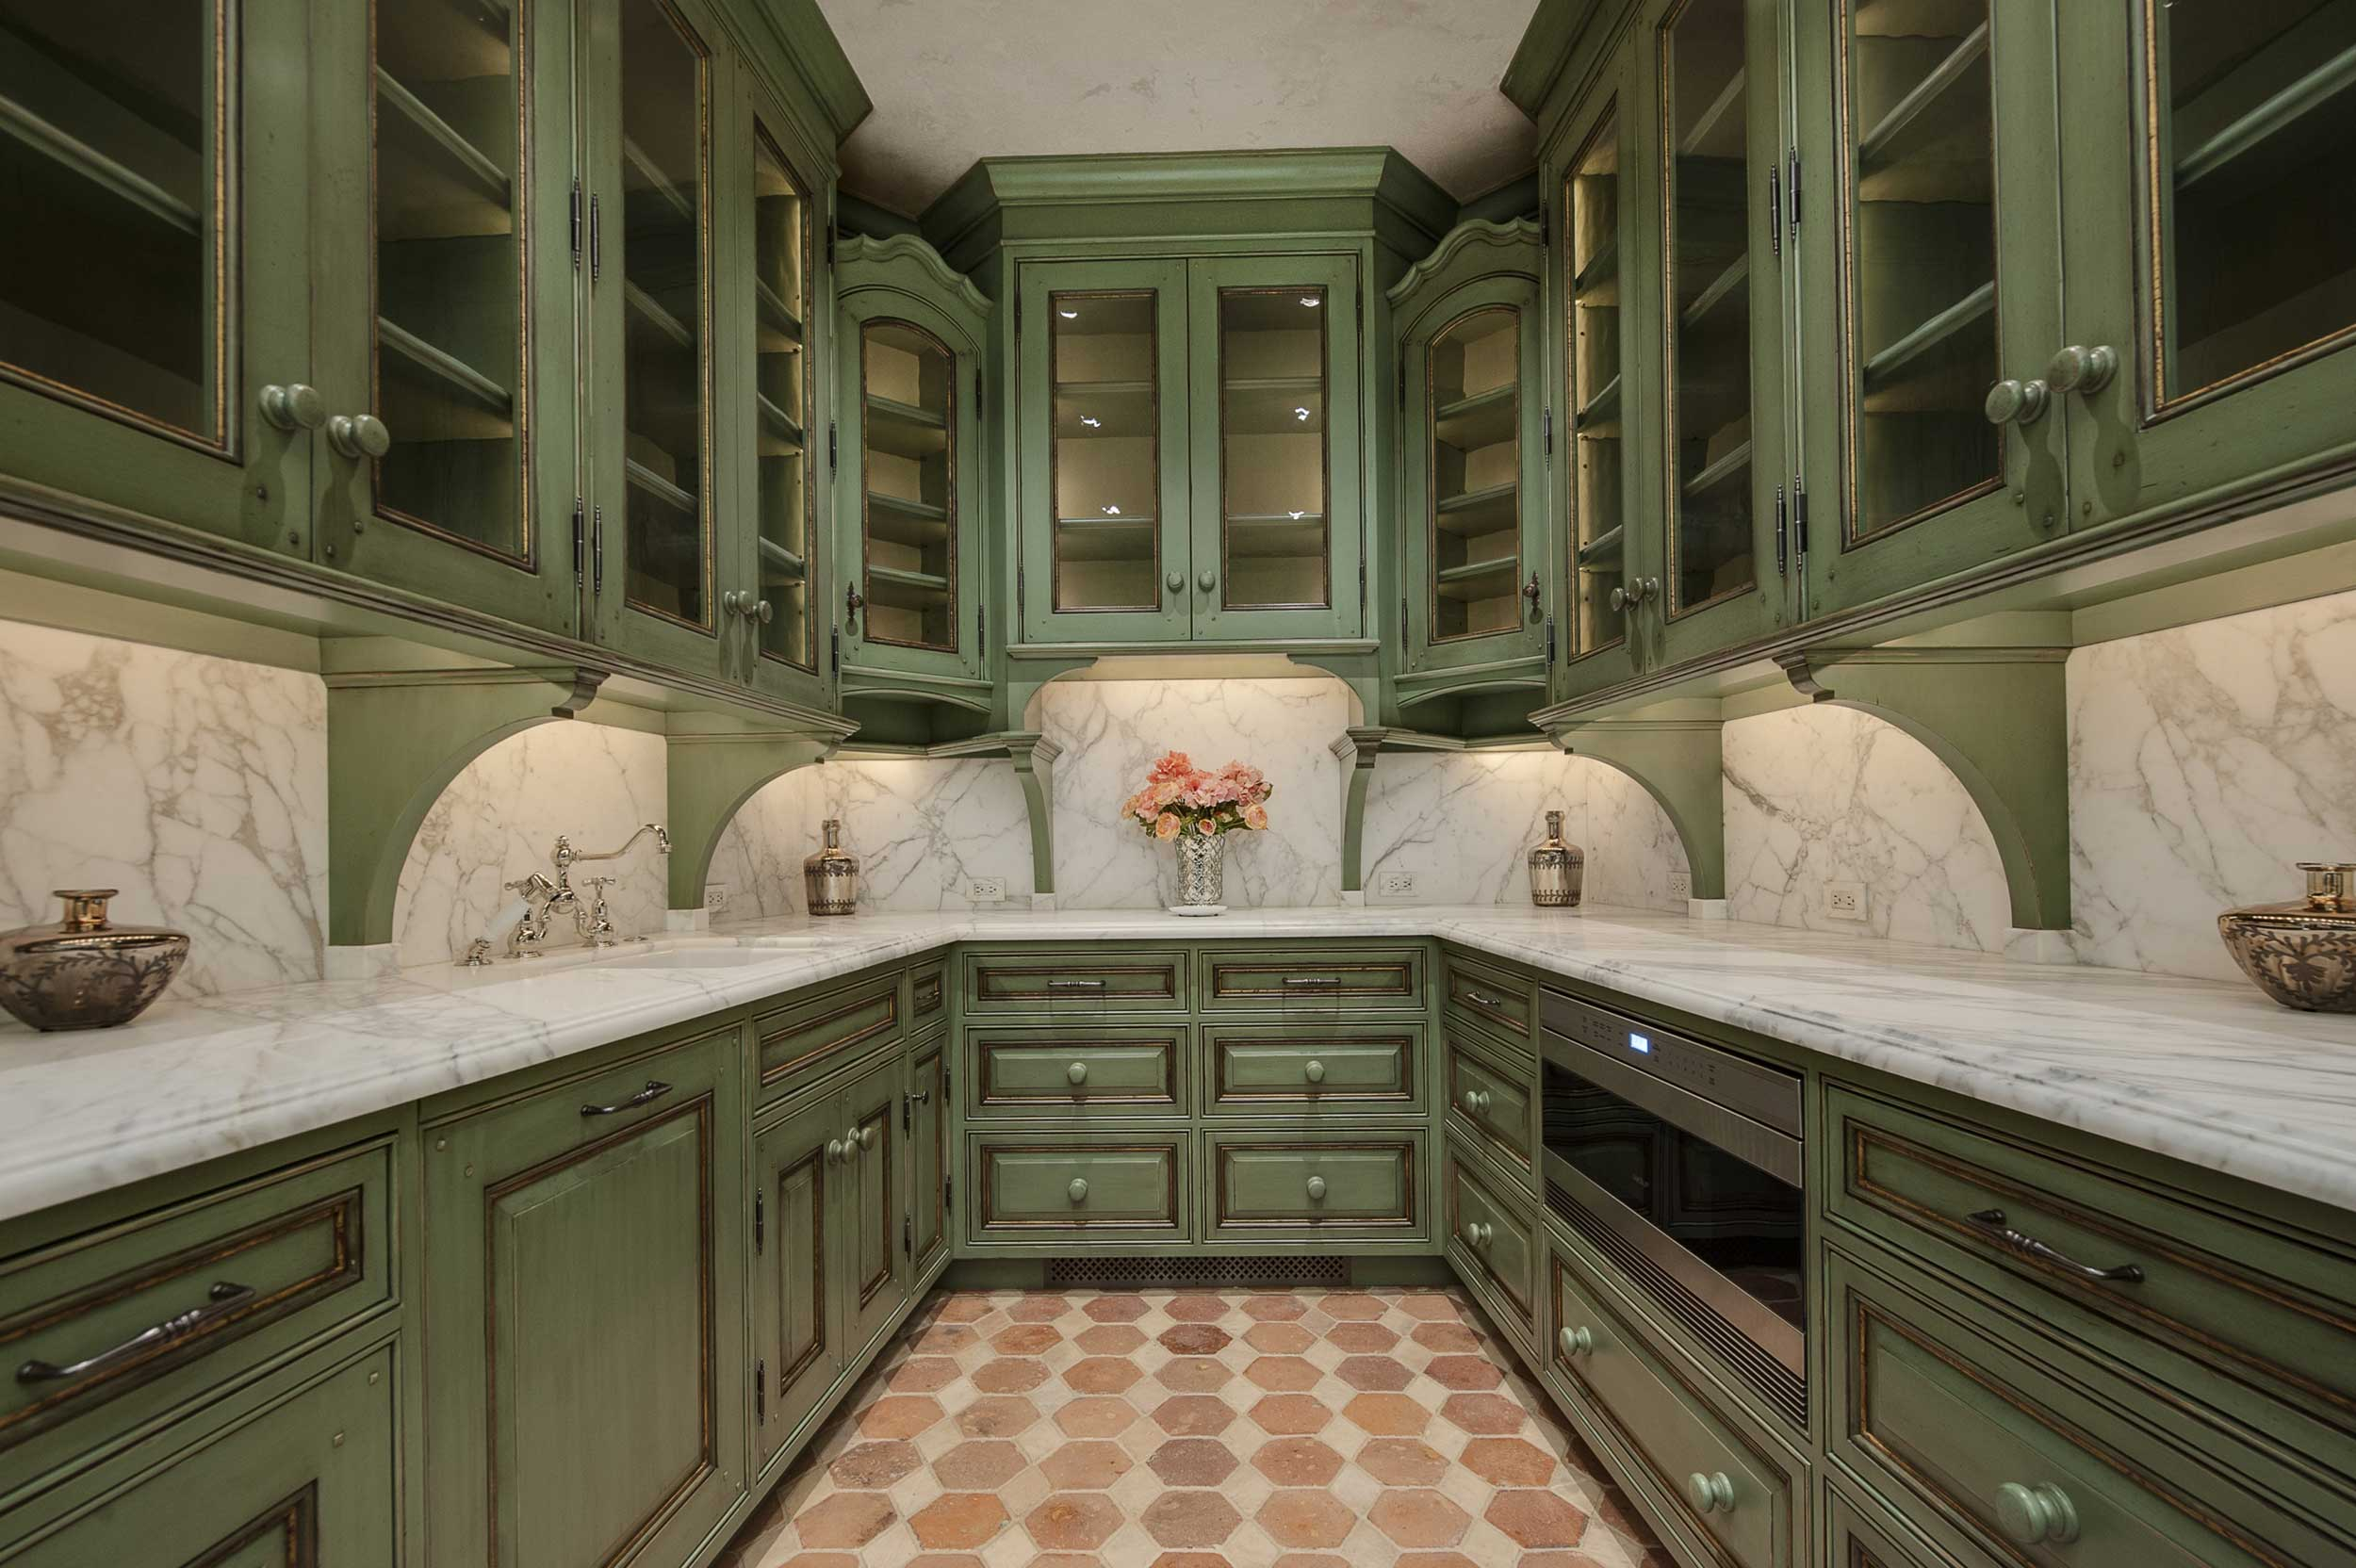 The kitchen also features fine wood details, as well as beautiful marble countertops, and the home's signature color: a perfect shade of green.